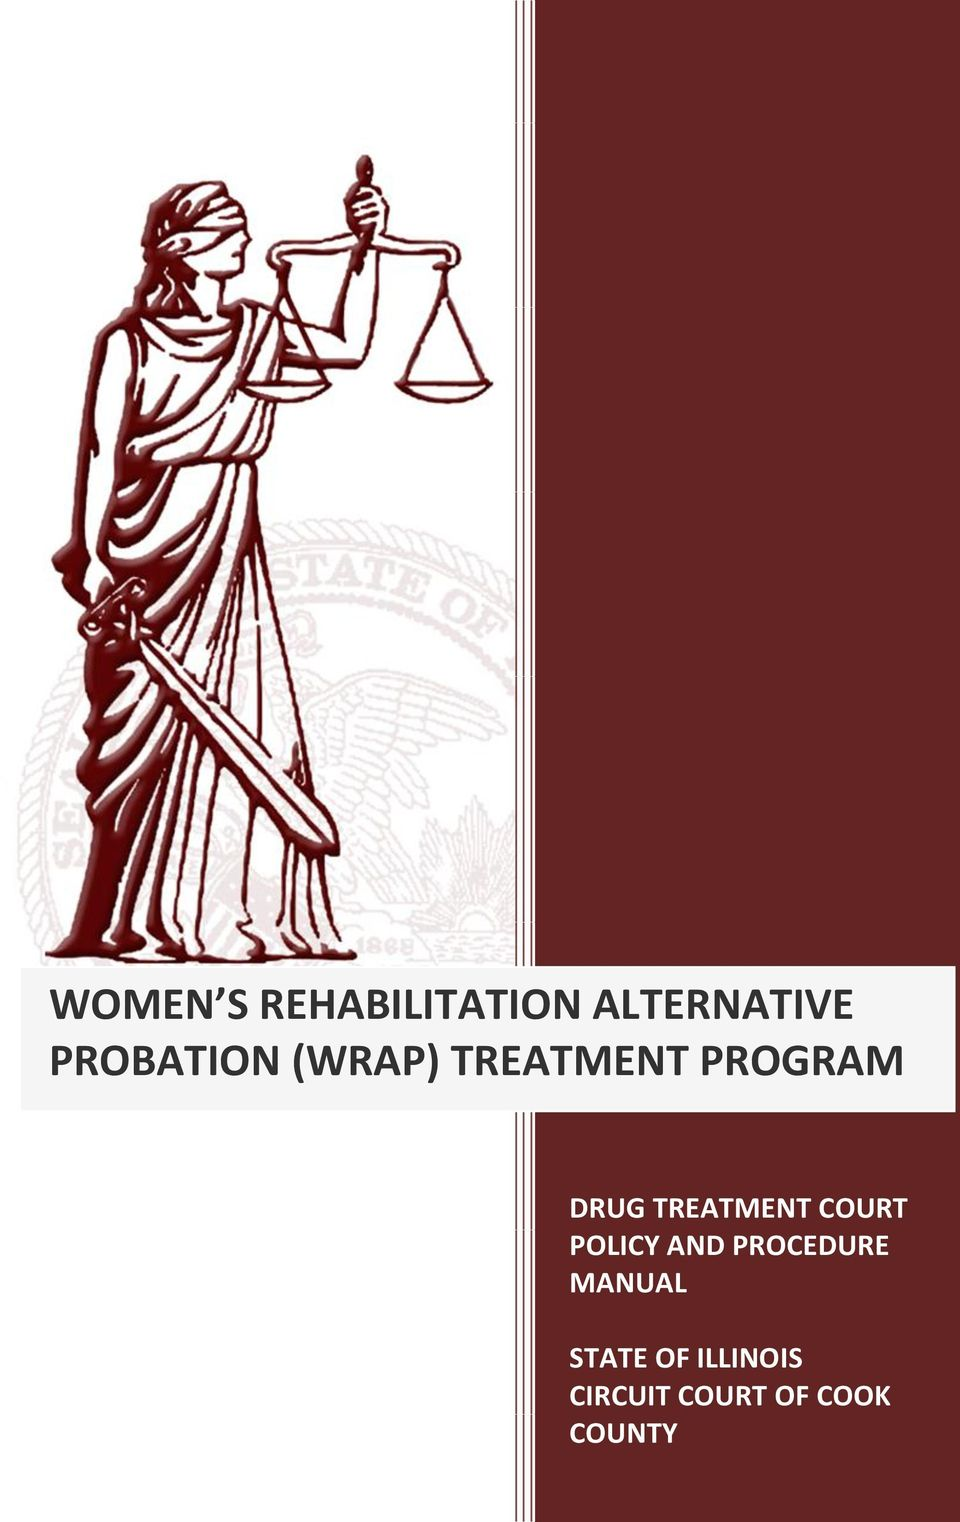 TREATMENT COURT POLICY AND PROCEDURE